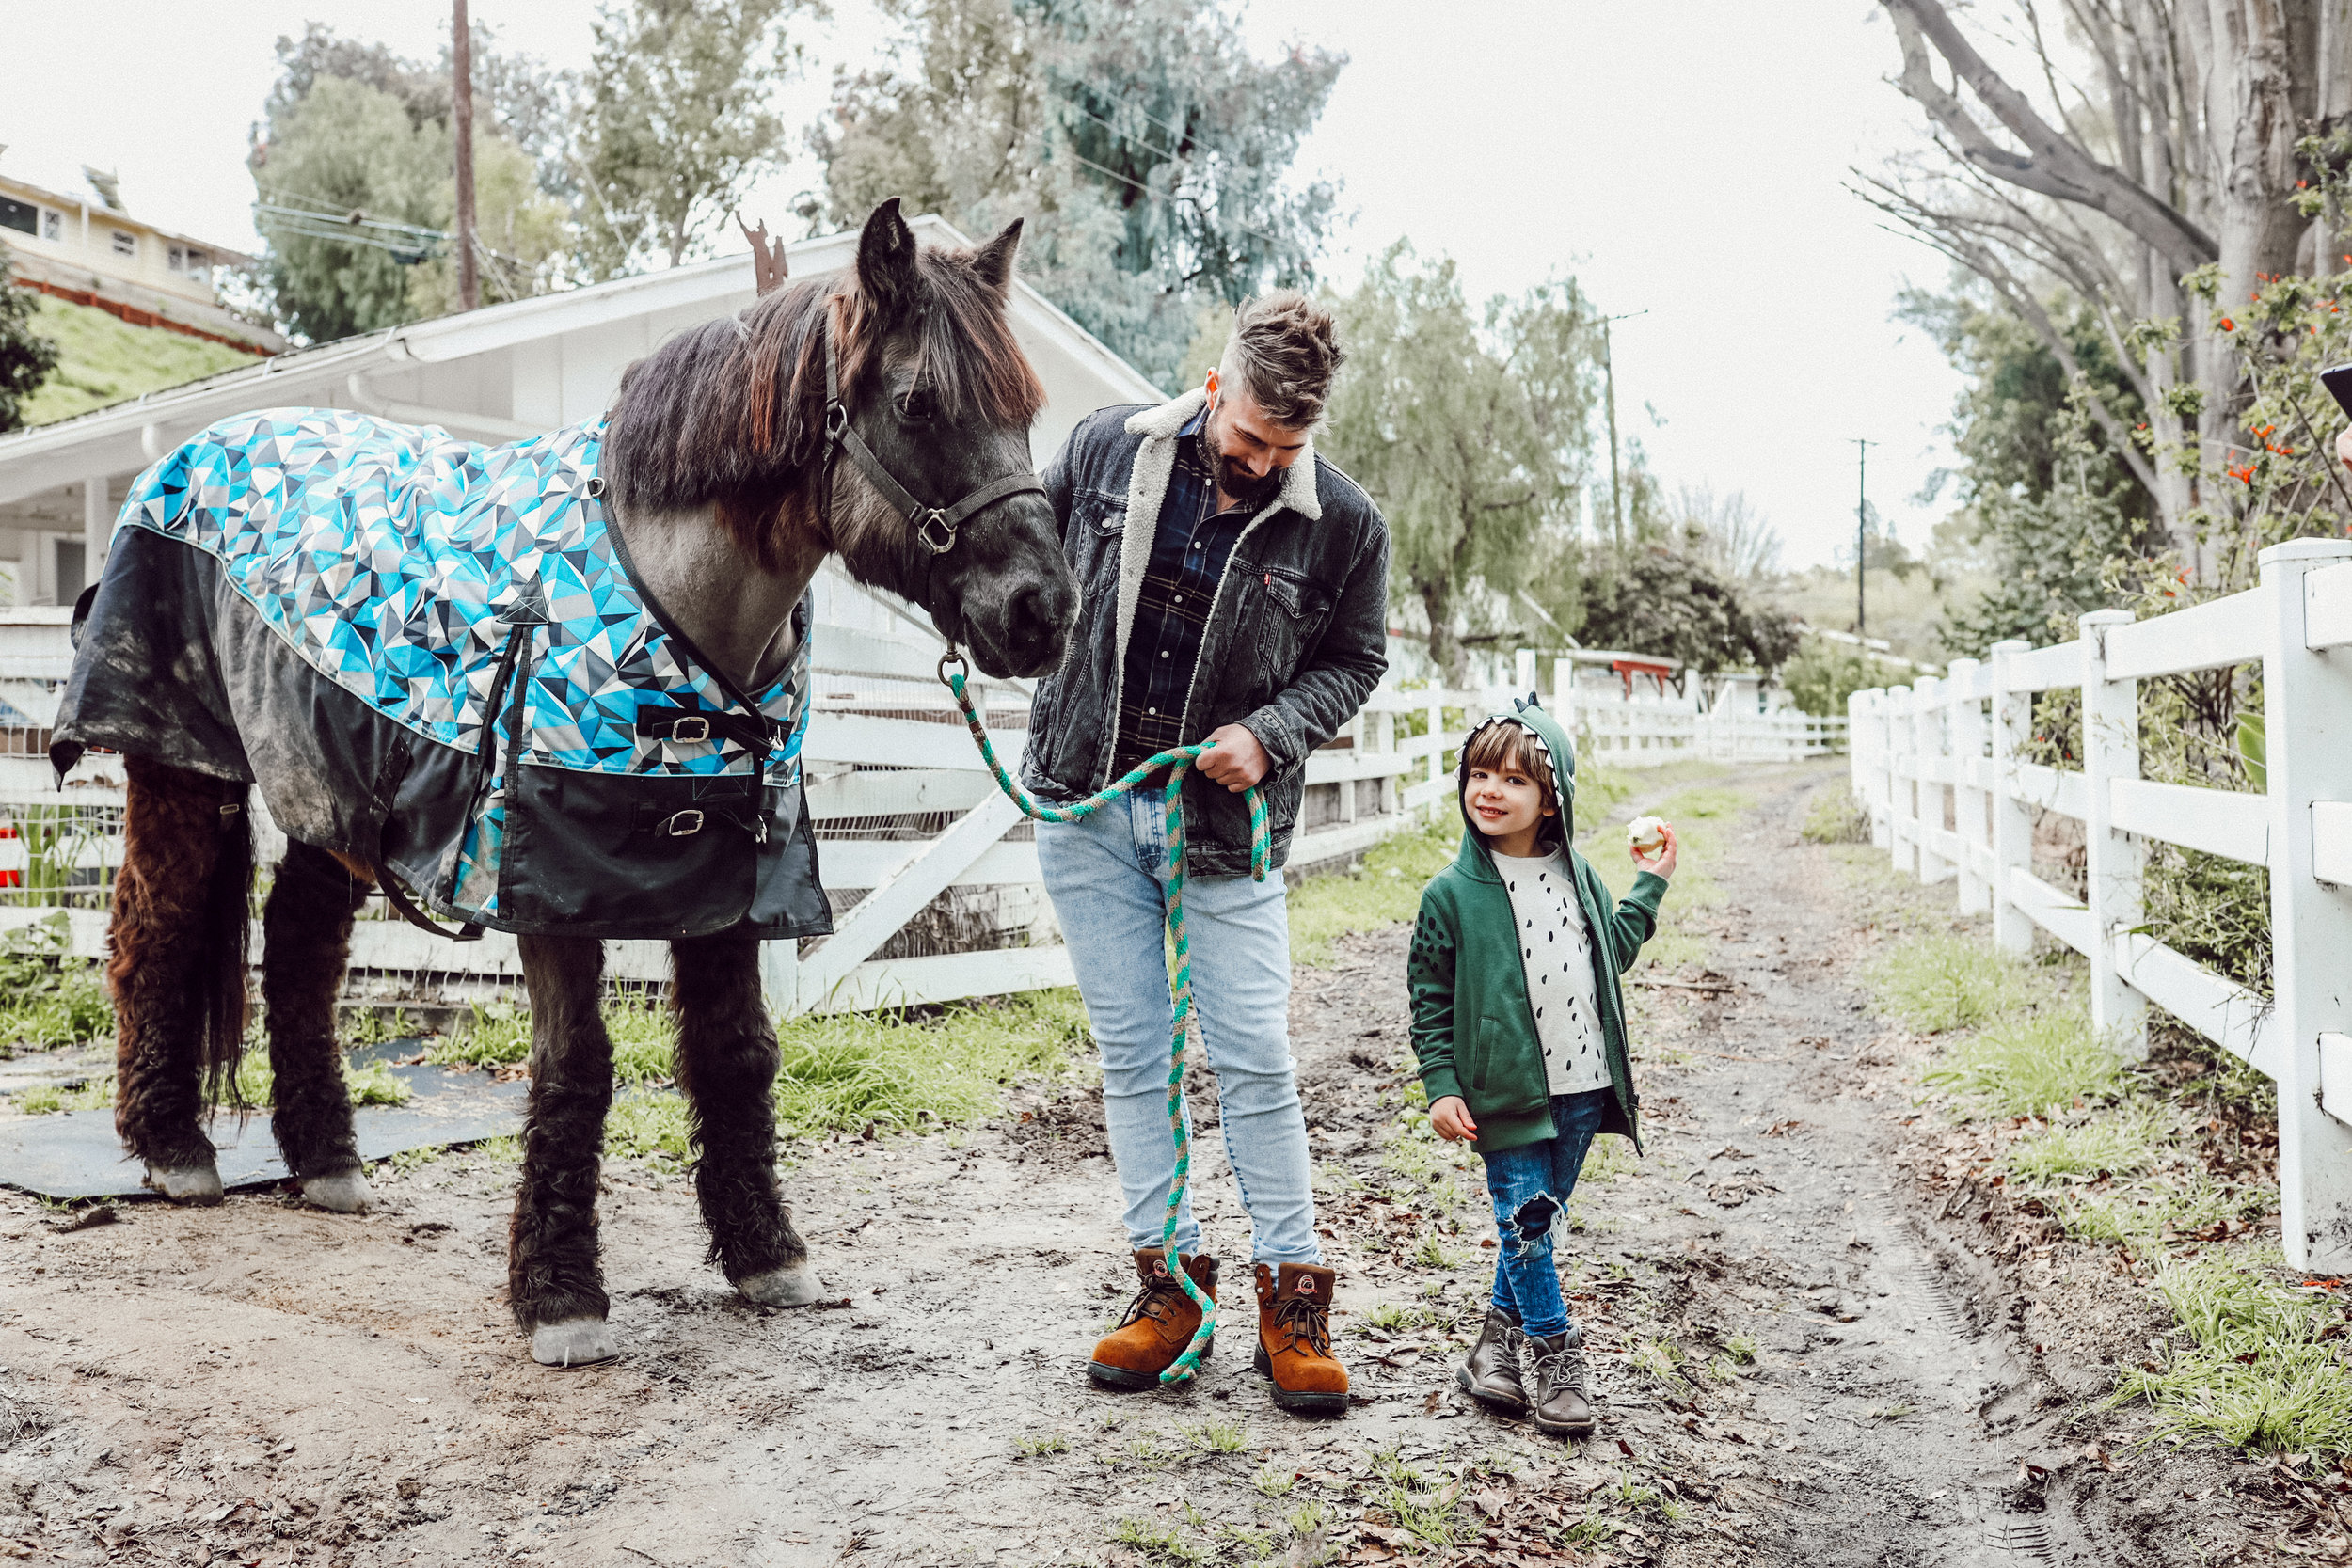 Horse trails, stables, and a corral - all in your backyard. Your child riding horses, learning about and appreciating nature, and living a life full of adventure and wonder. Rolling Hills Estates is a magical place just steps away from the modern day conveniences Los Angeles has to offer.  Photo Cred. Melanie Maroon